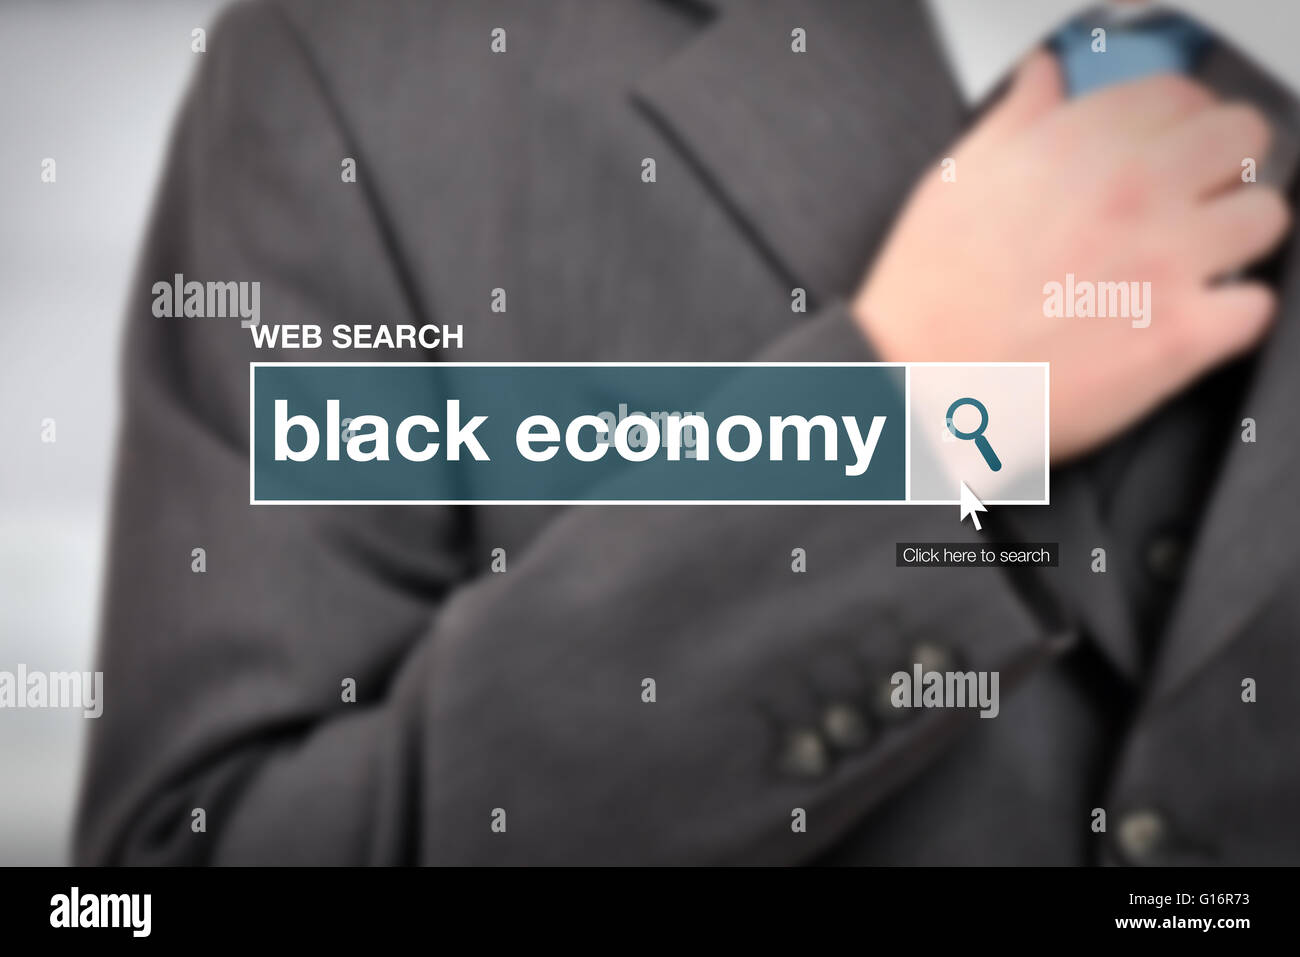 Black economy - web search bar glossary term on internet - Stock Image